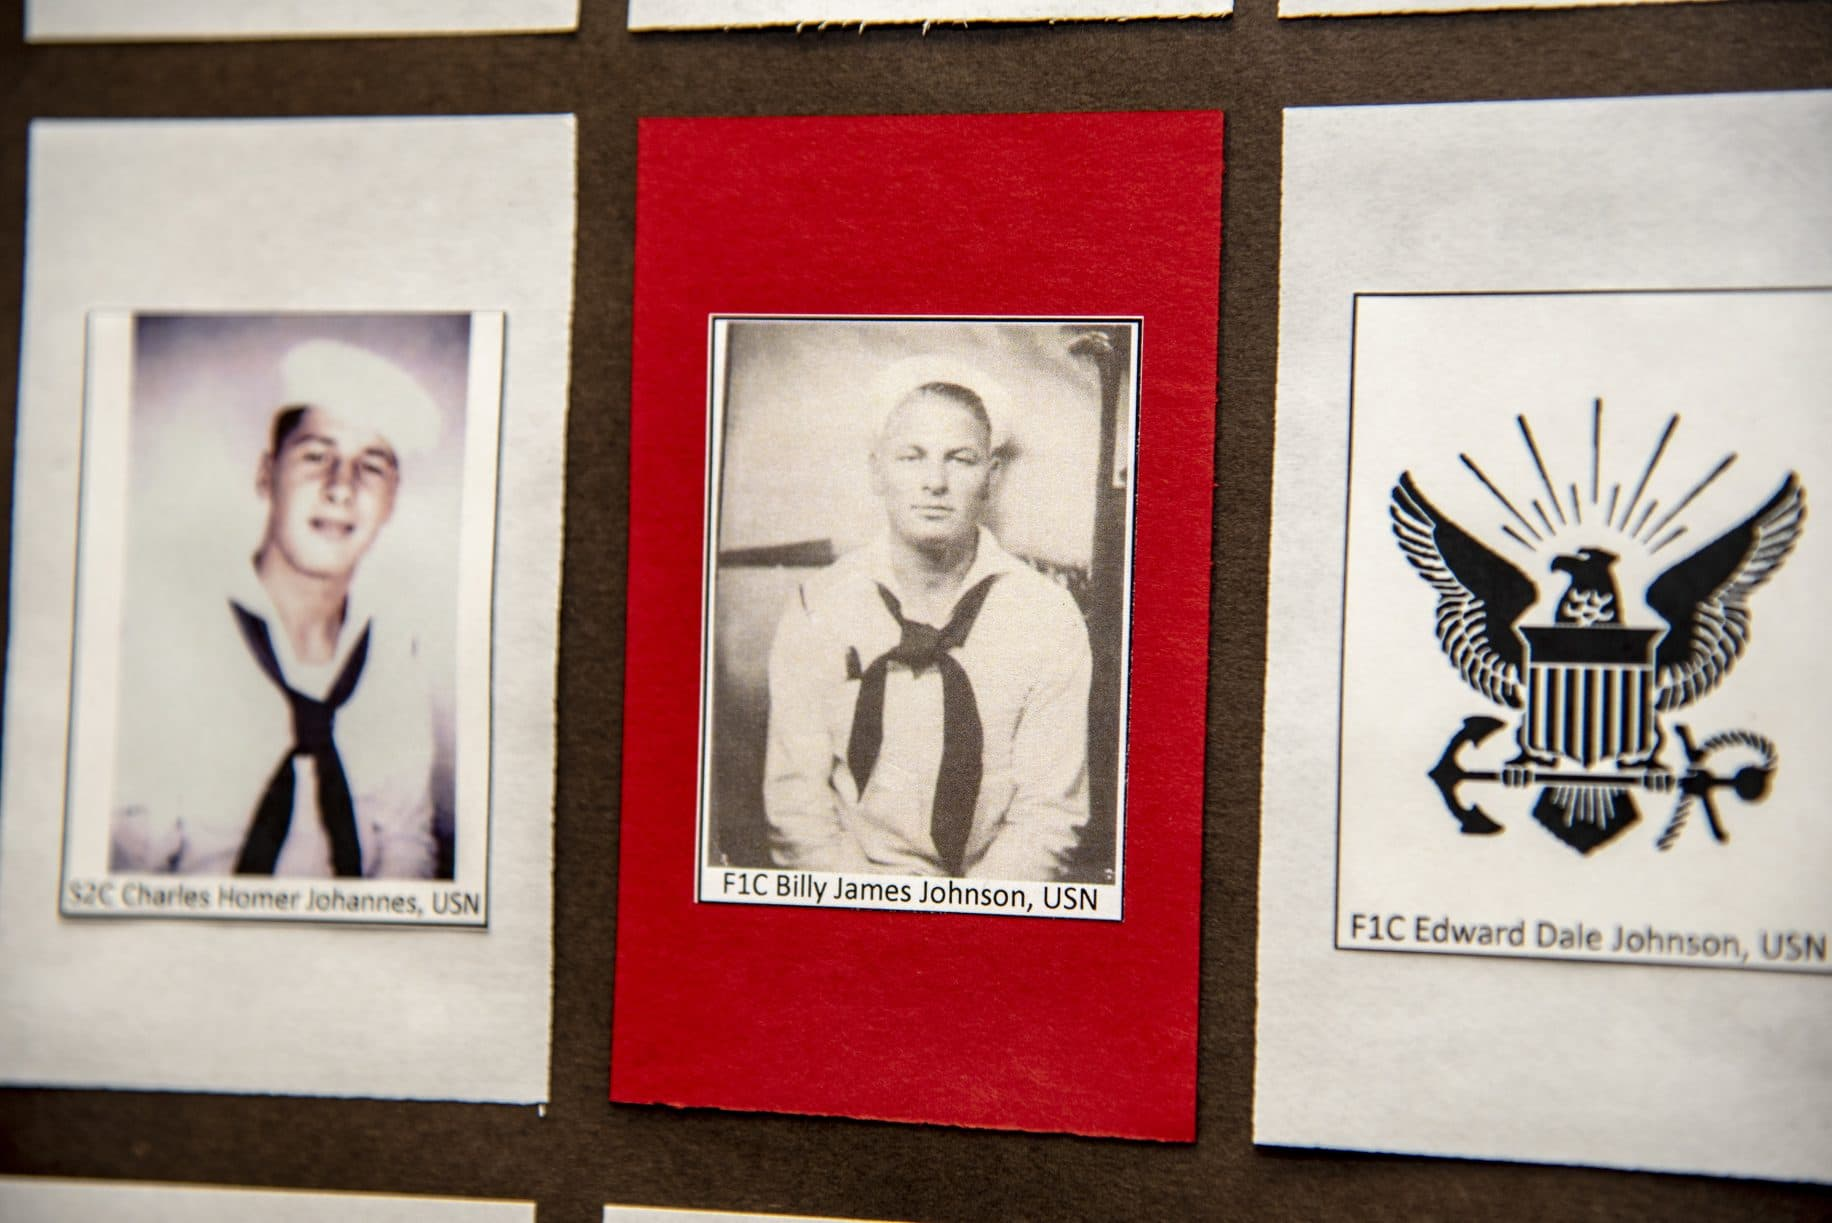 Sailor who died at Pearl Harbor coming home for reburial in NM